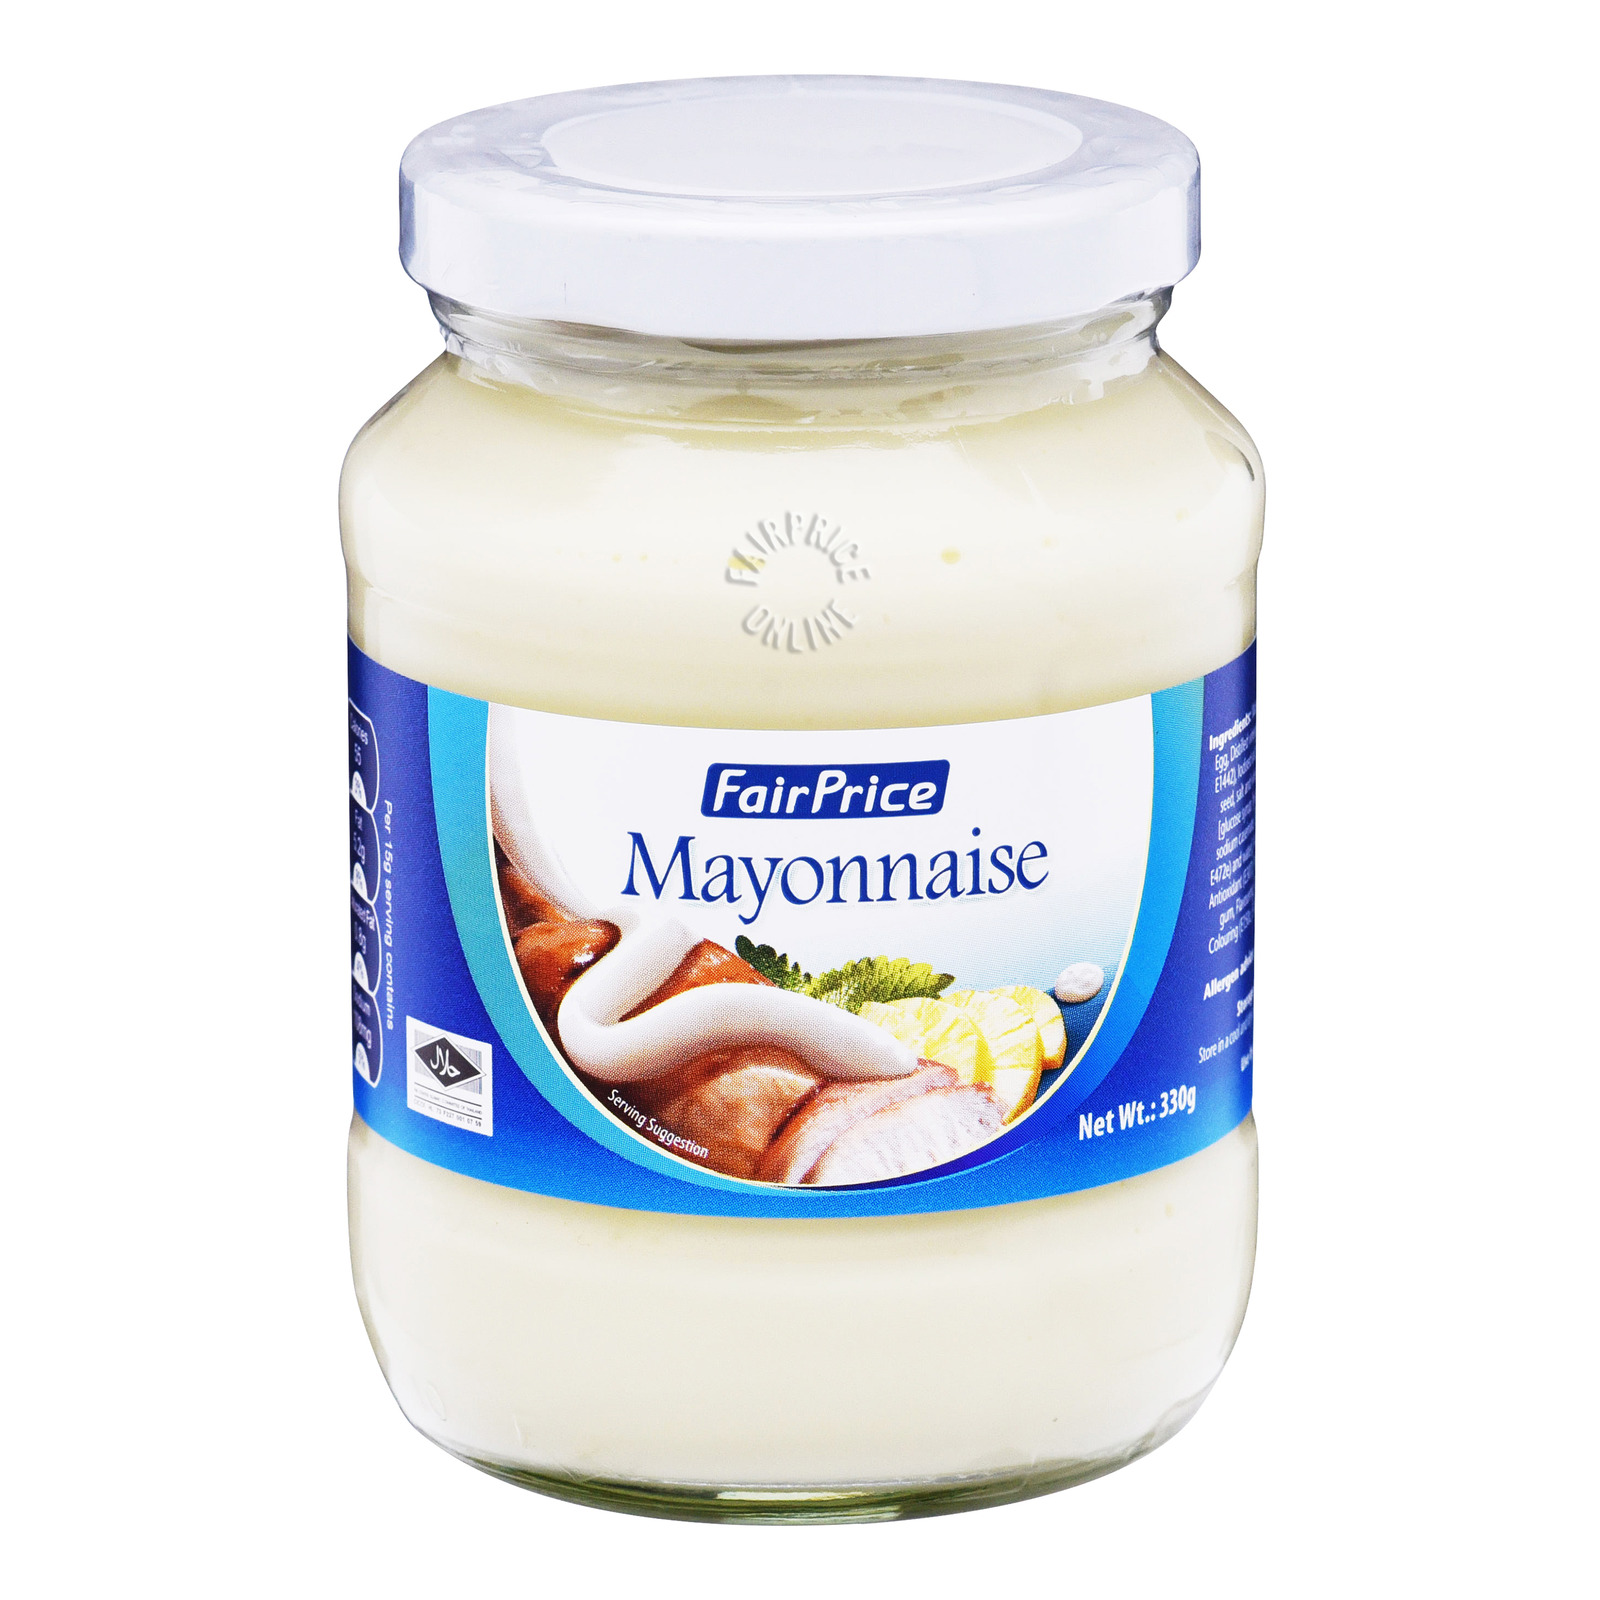 FairPrice Mayonnaise Jar